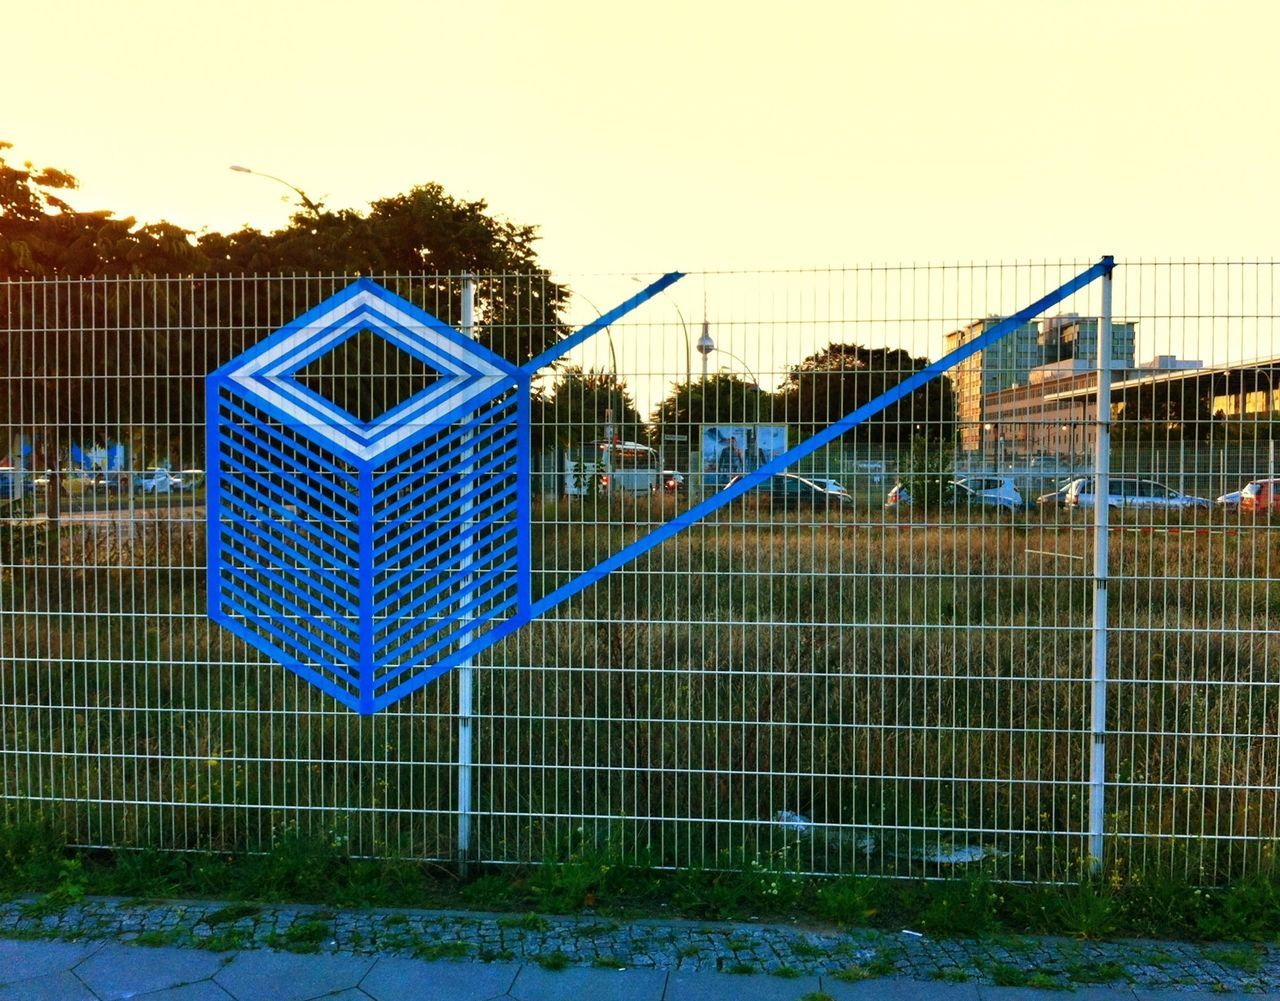 Tape art on fence in city against clear sky